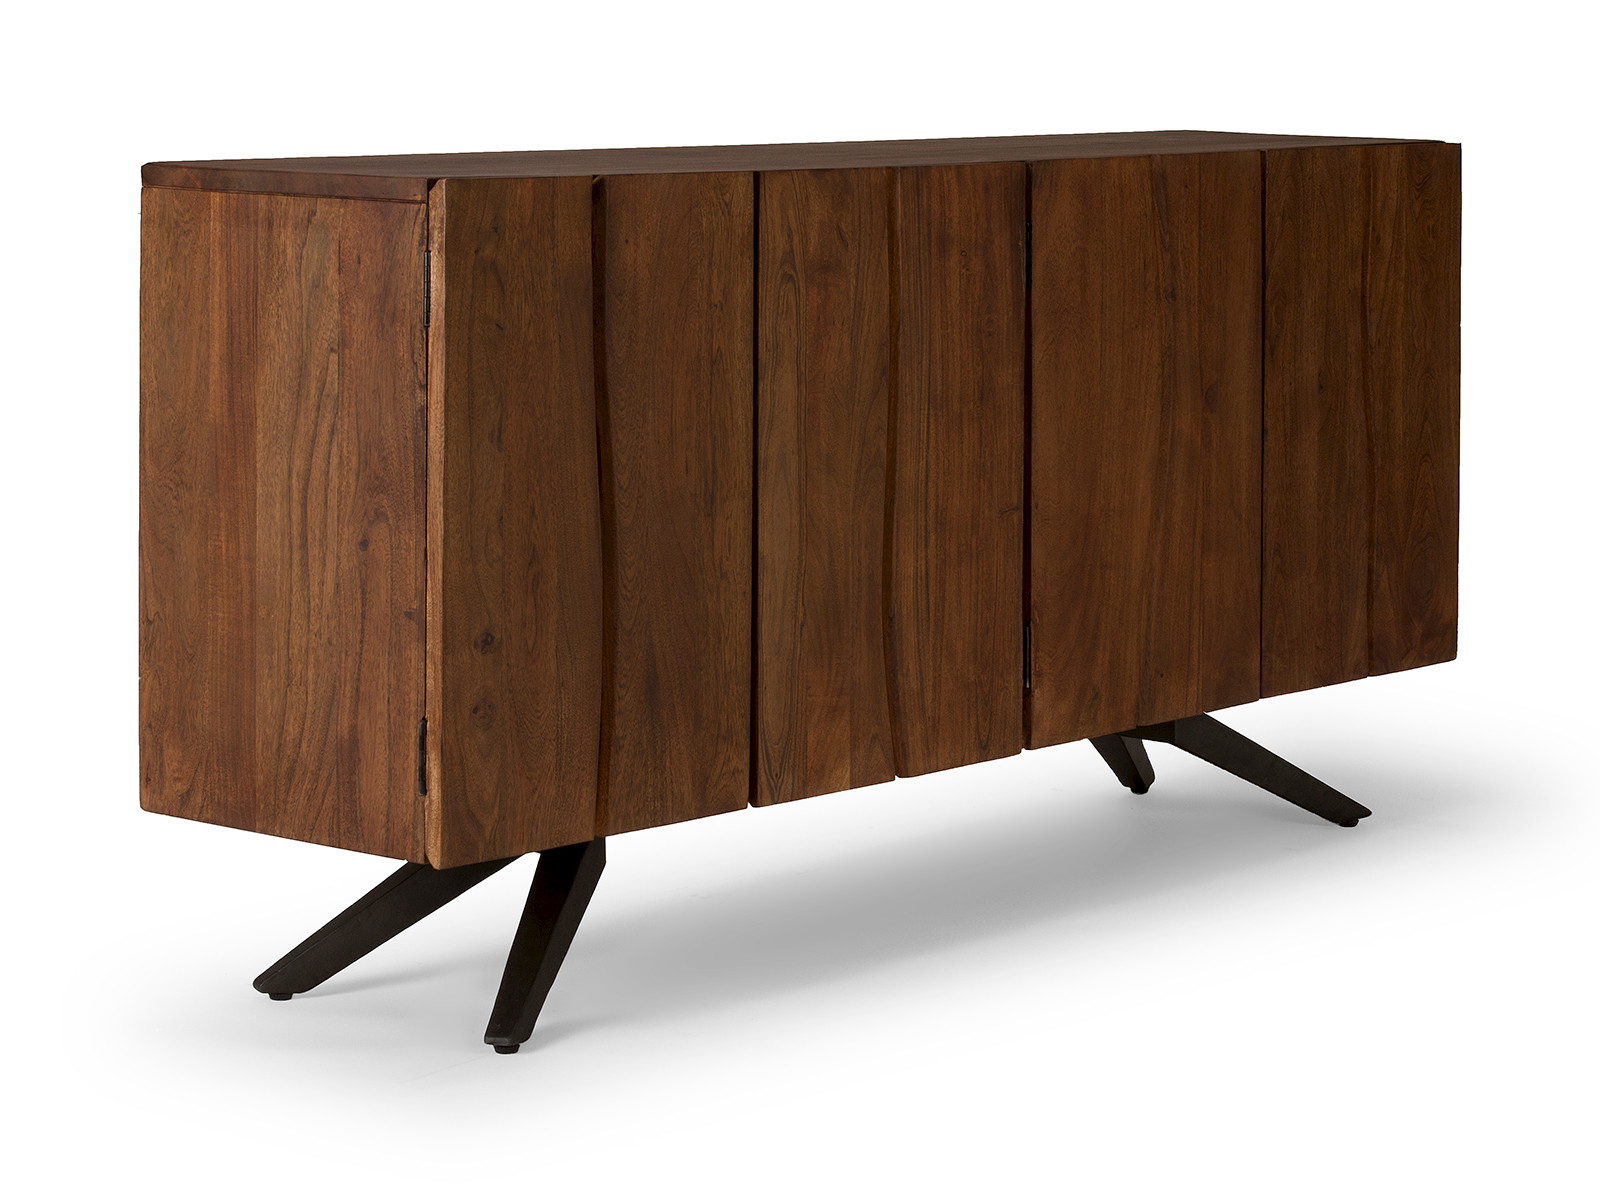 industrie m bel sideboard massivholz aus akazie versandkostenfreie m bel. Black Bedroom Furniture Sets. Home Design Ideas